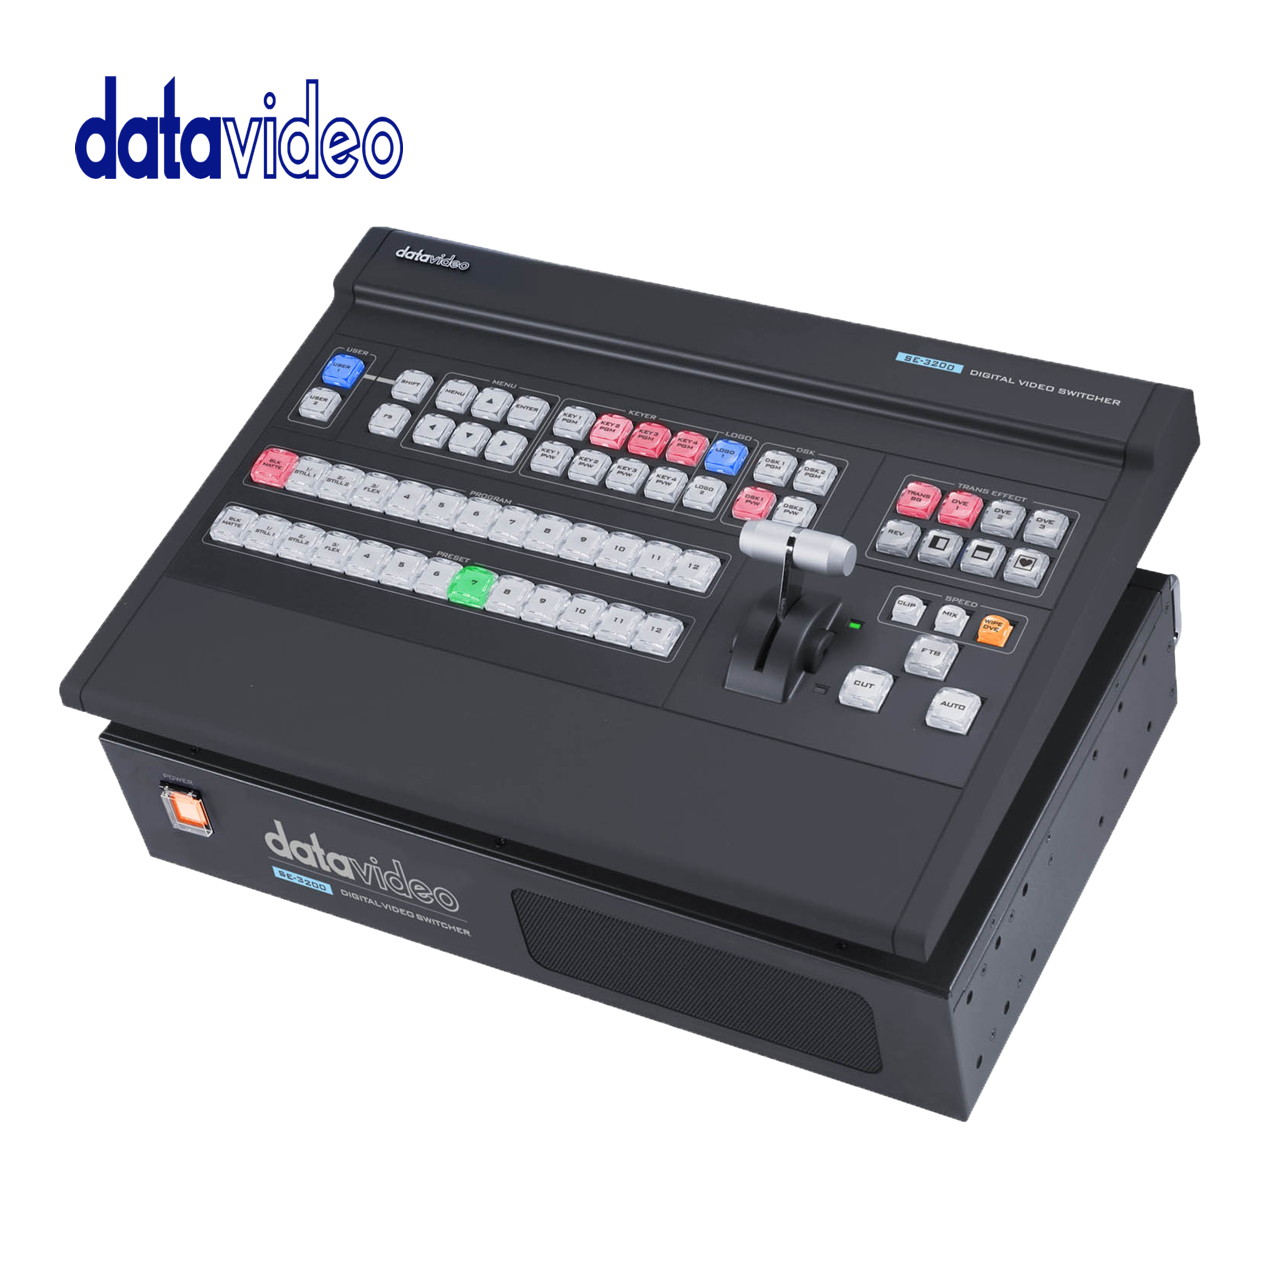 Datavideo's Most Advanced 12 Input 1080P 50/60 Switcher Pro Video Data Video